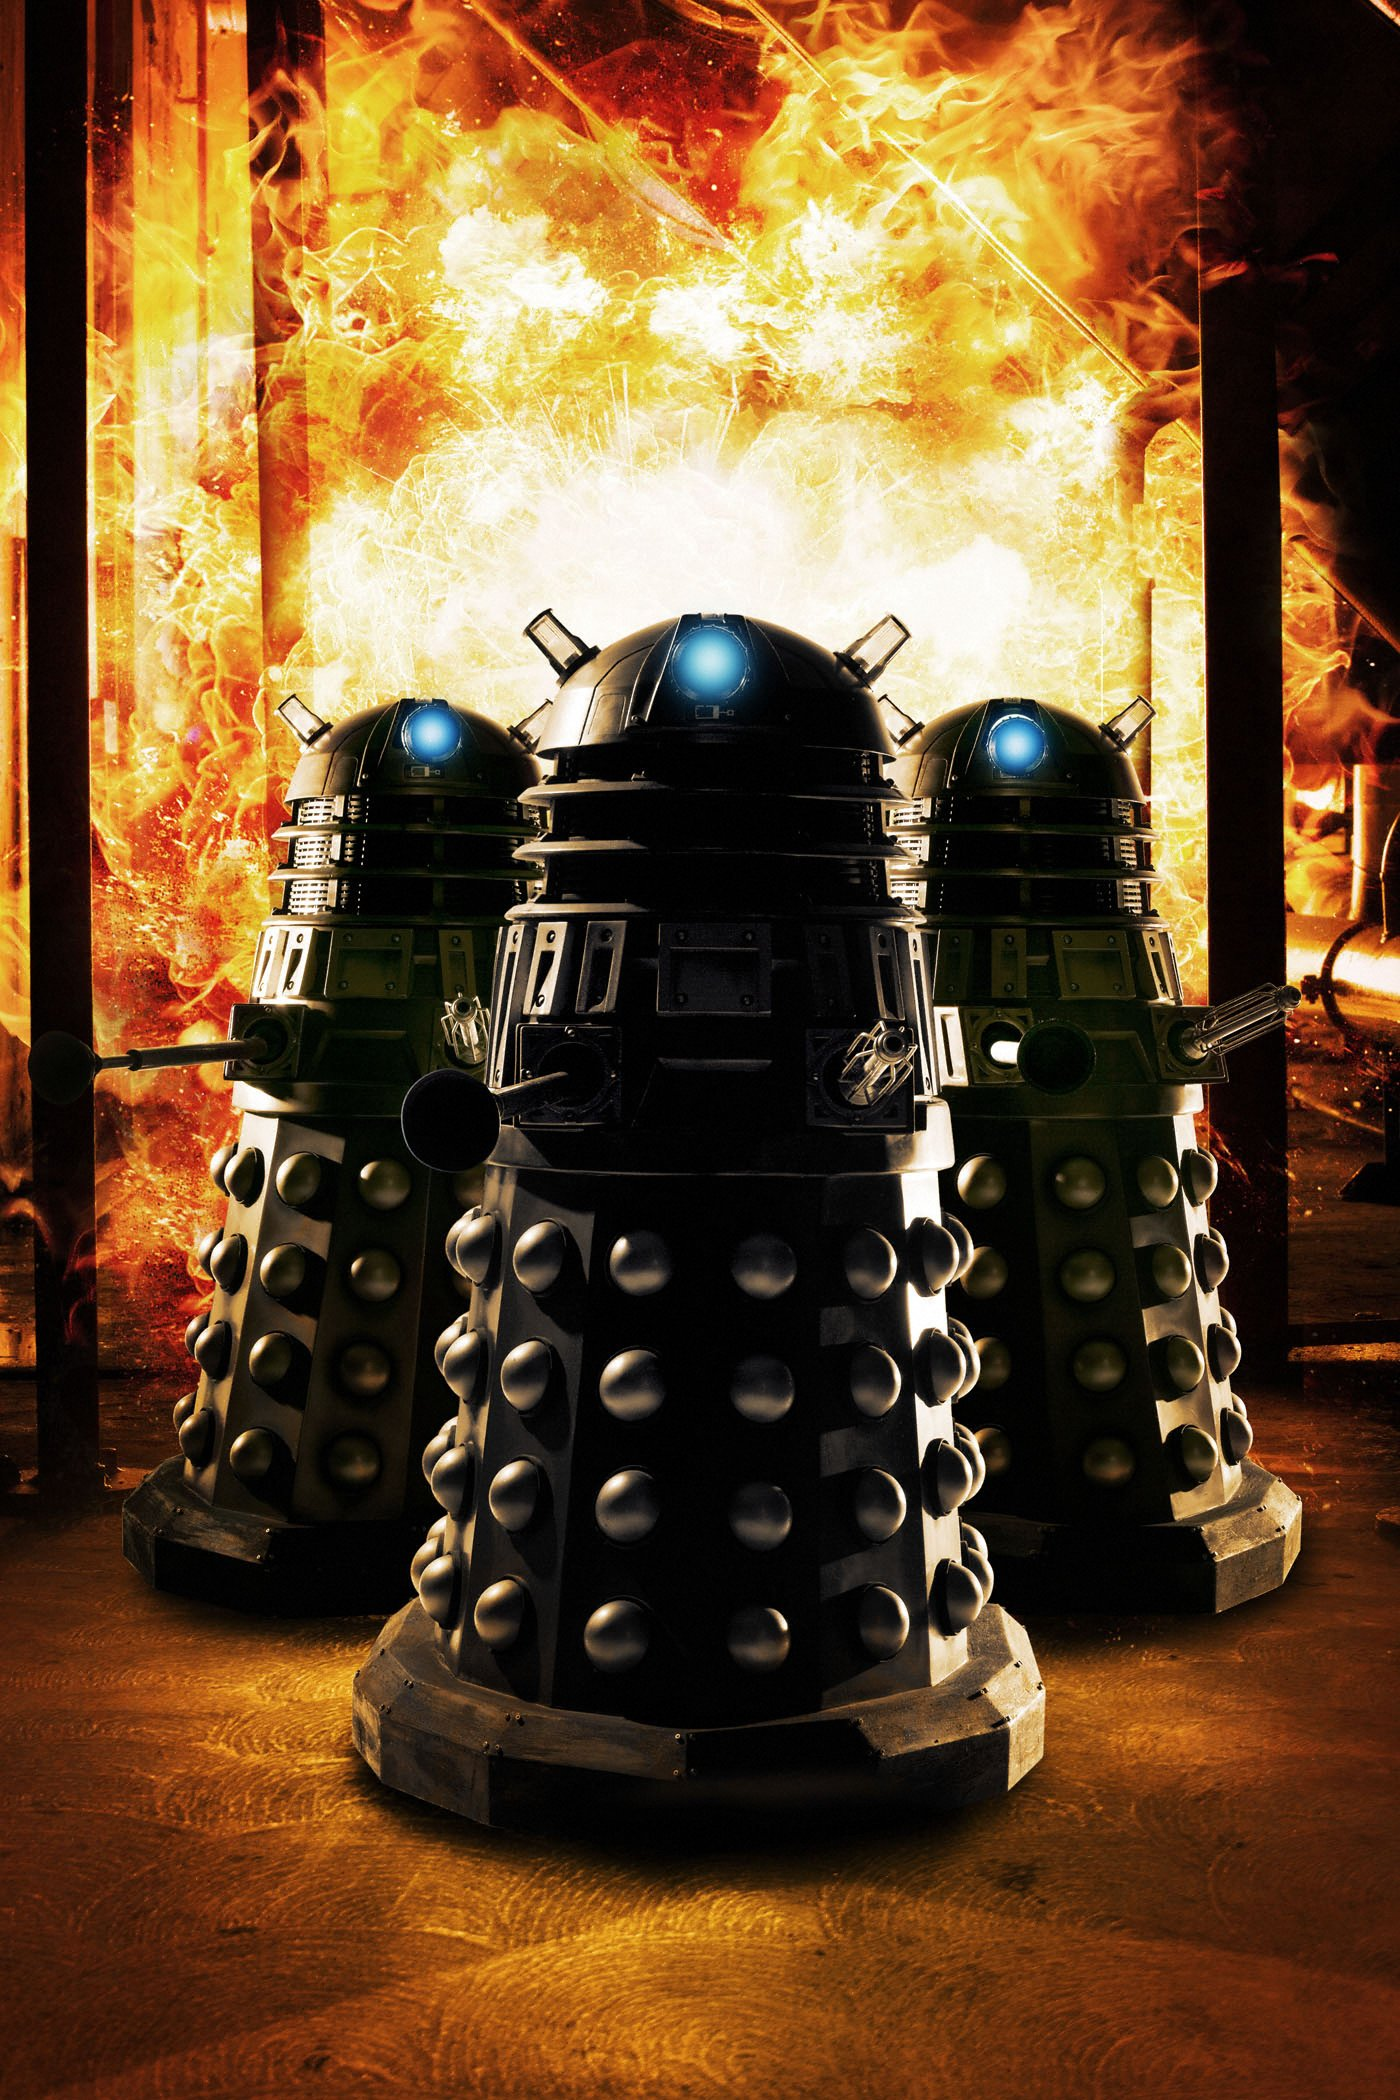 Good Wallpapers Iphone Doctor Who Tv Series 3 Story 182 Daleks In Manhattan